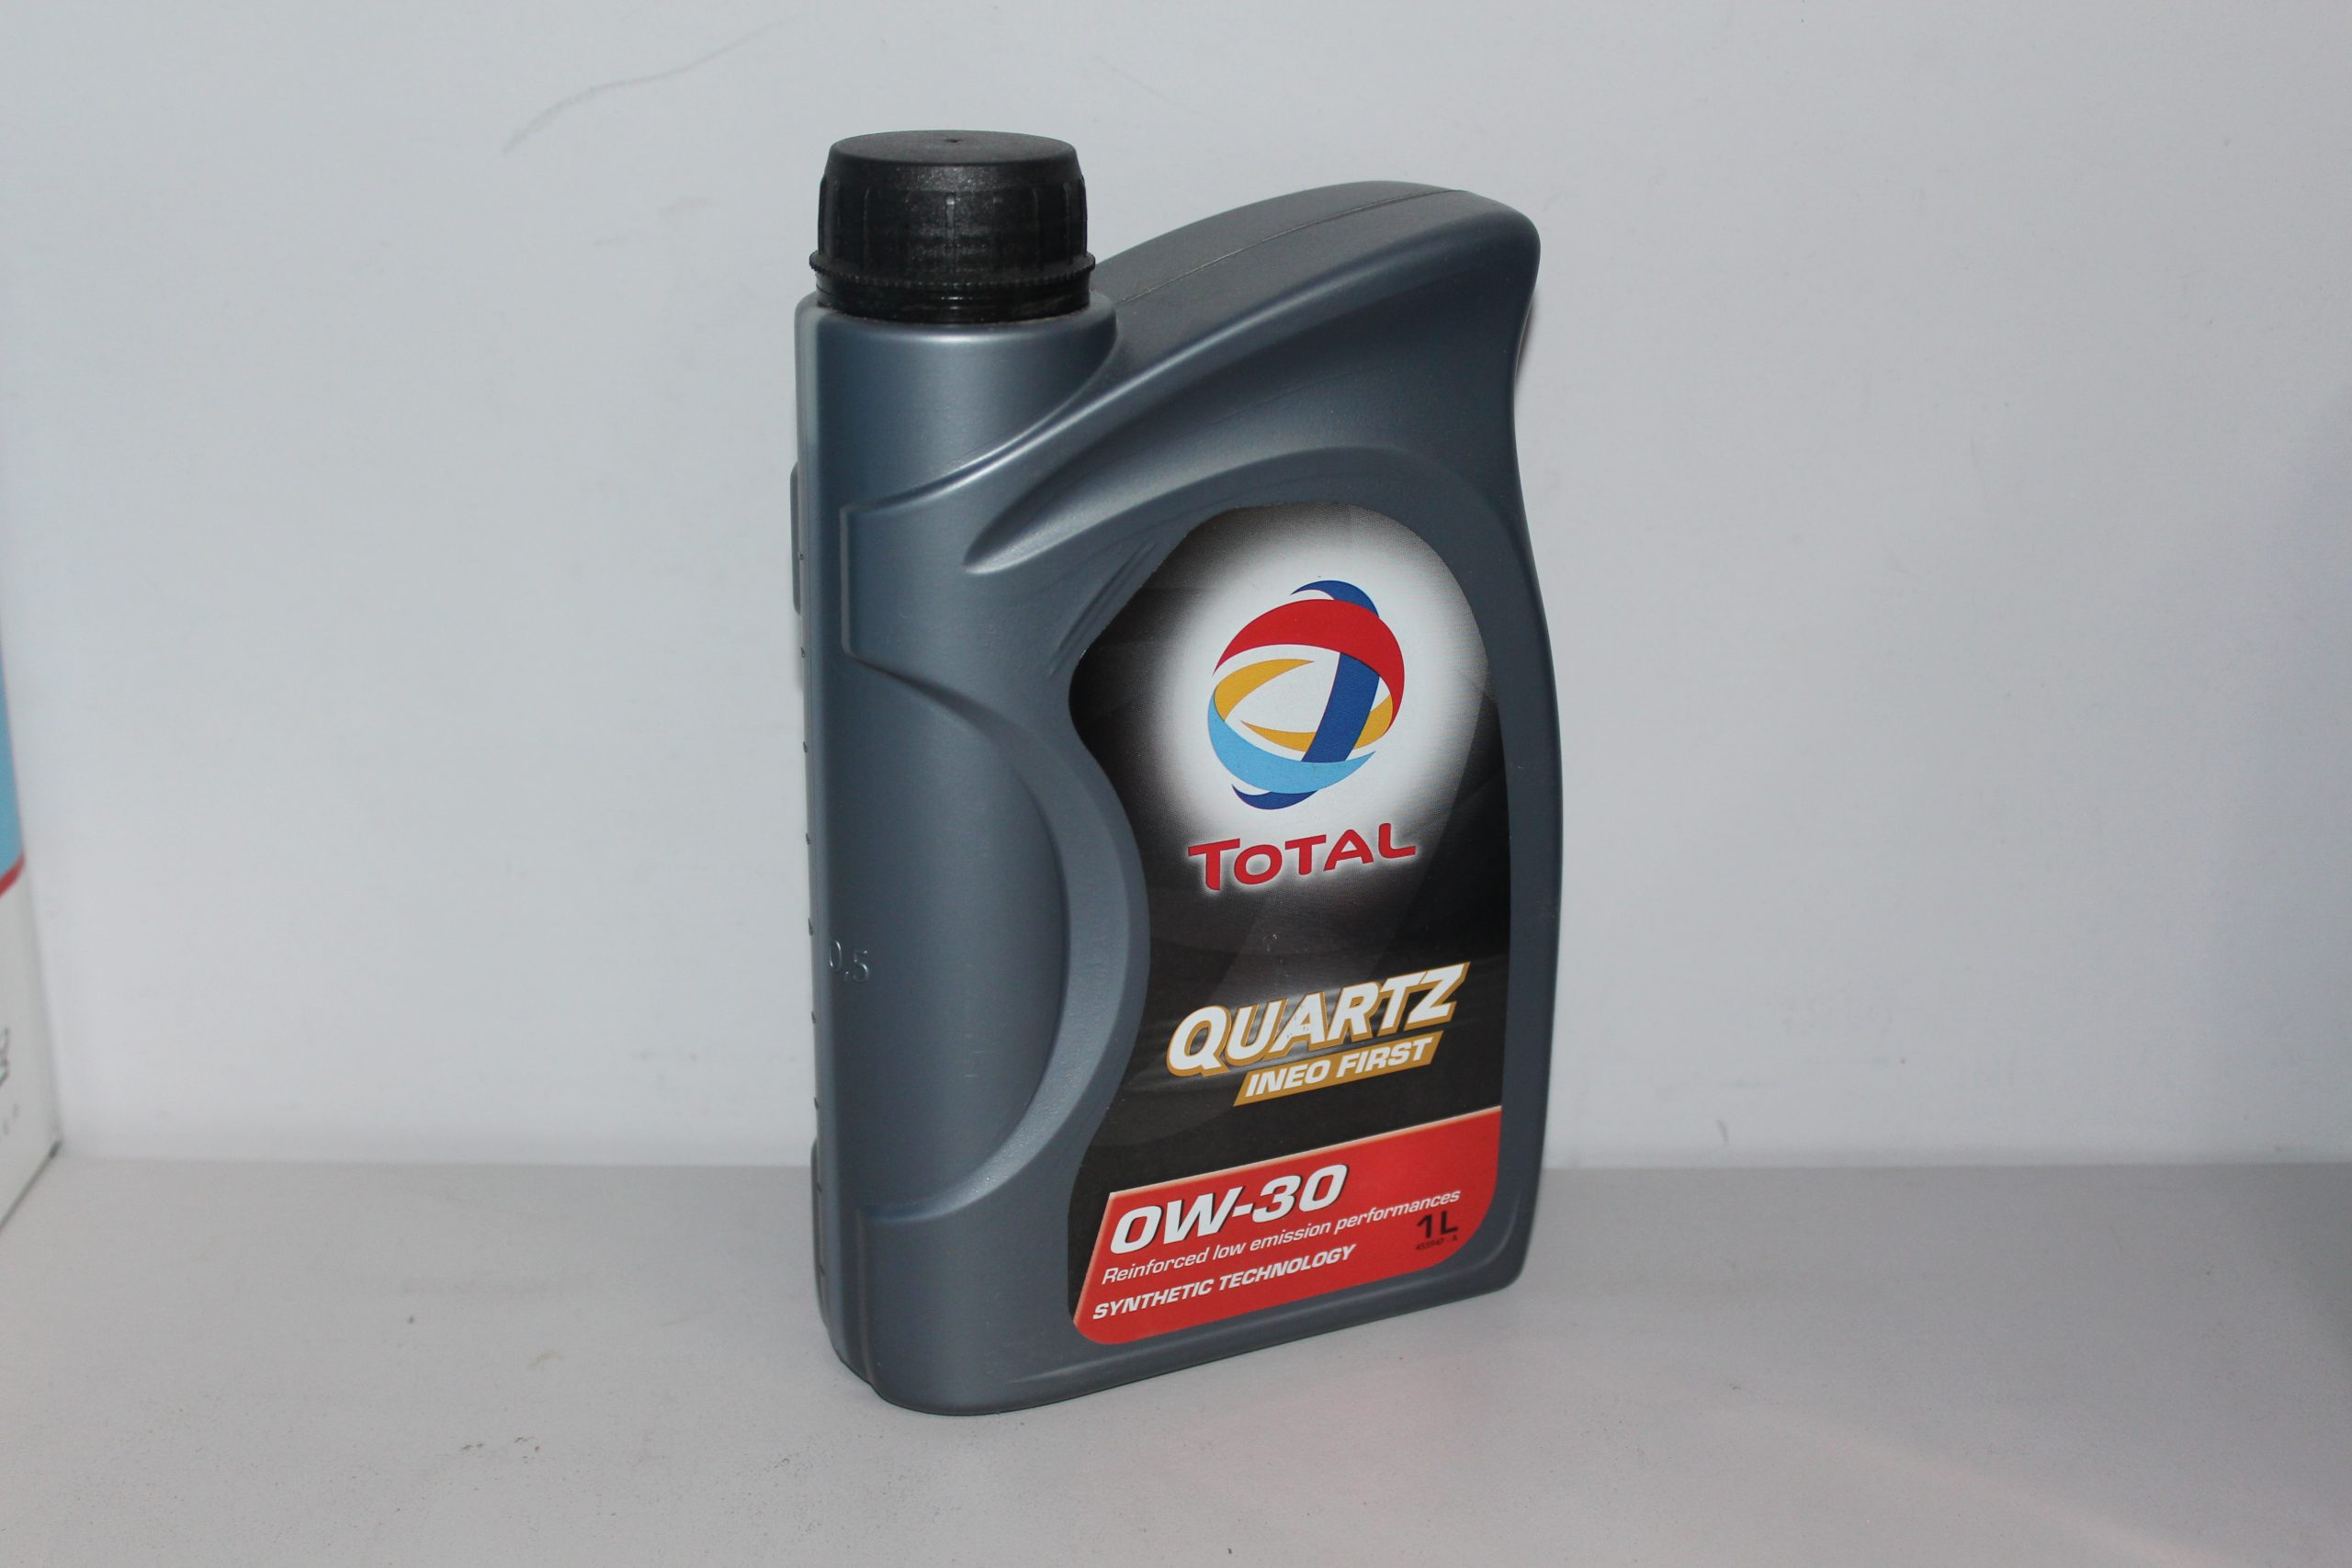 TOTAL Моторное масло Quartz Ineo FIRST SAE 0w30 1л Full-synthetic